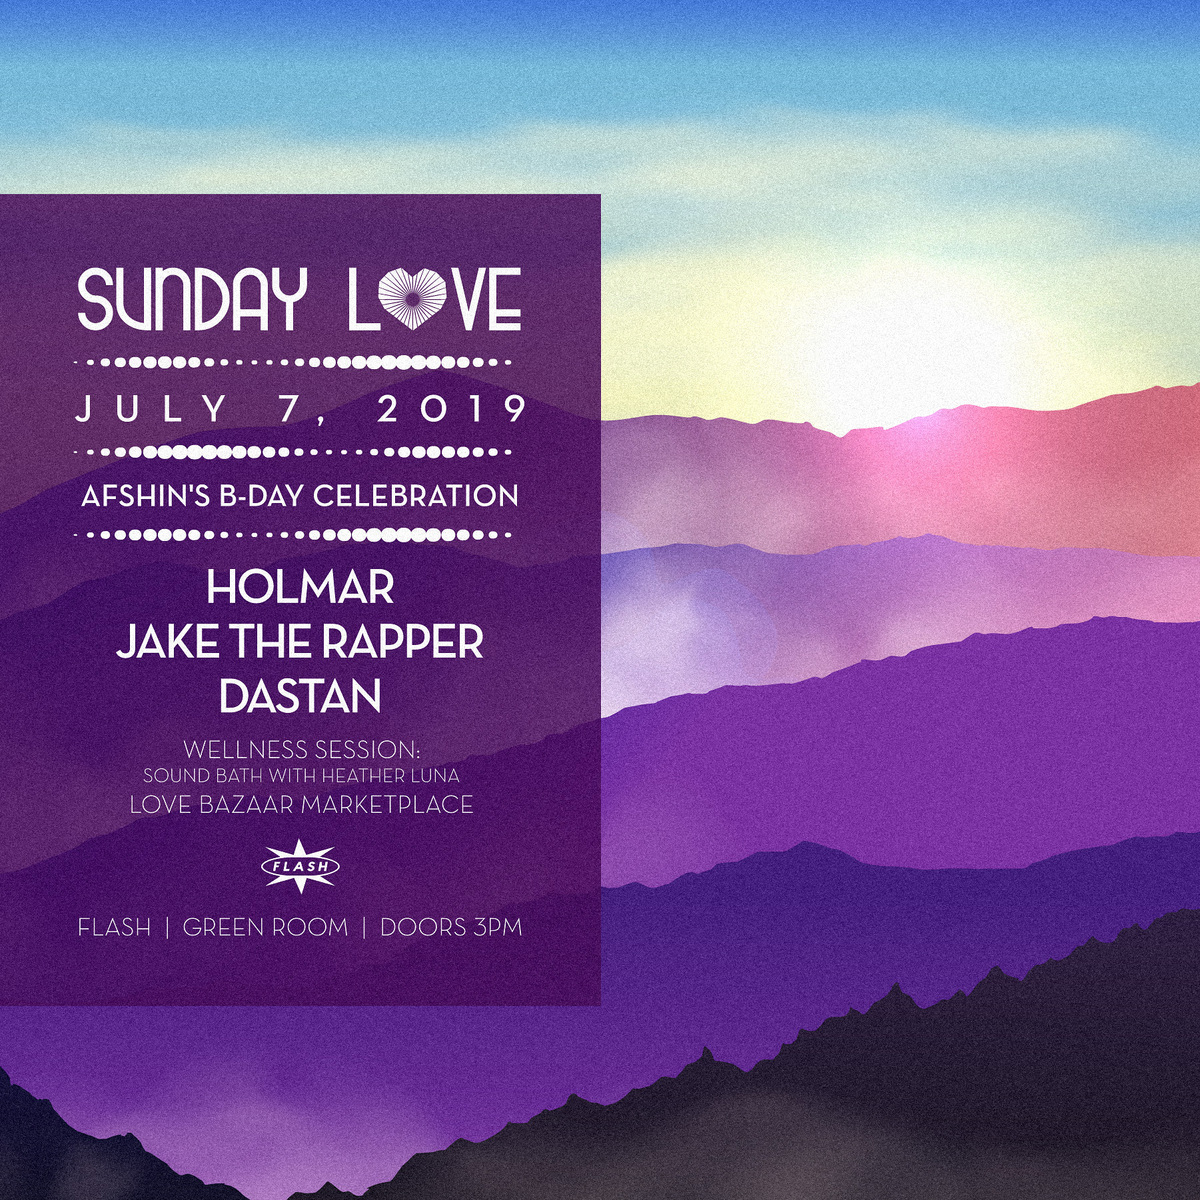 Sunday Love: Holmar - Jake the Rapper - Dastan event thumbnail